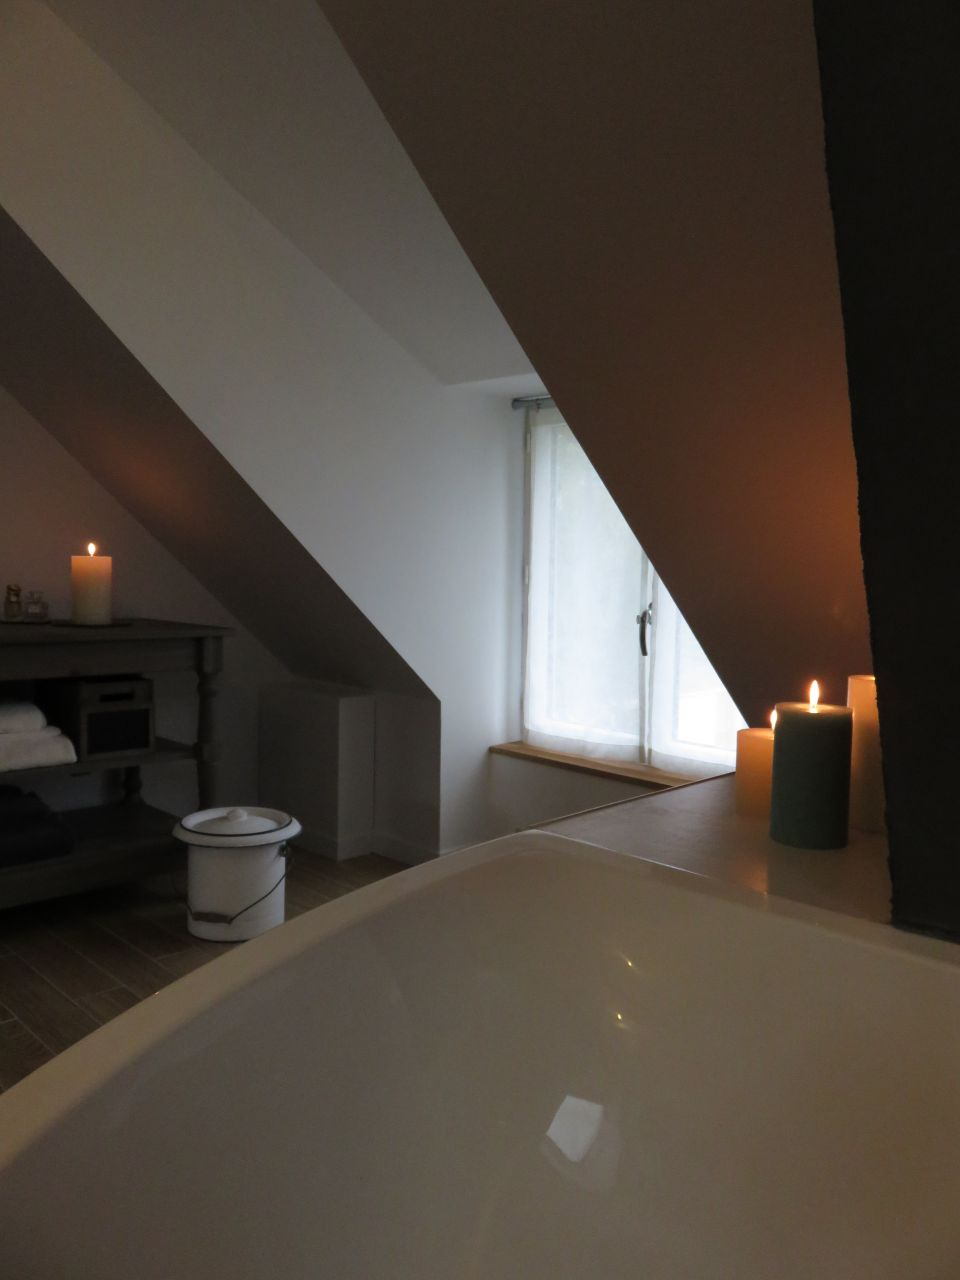 salle de bain tage de la d co en buanderie decoration salle d 39 eau murs erigne maine et loire. Black Bedroom Furniture Sets. Home Design Ideas